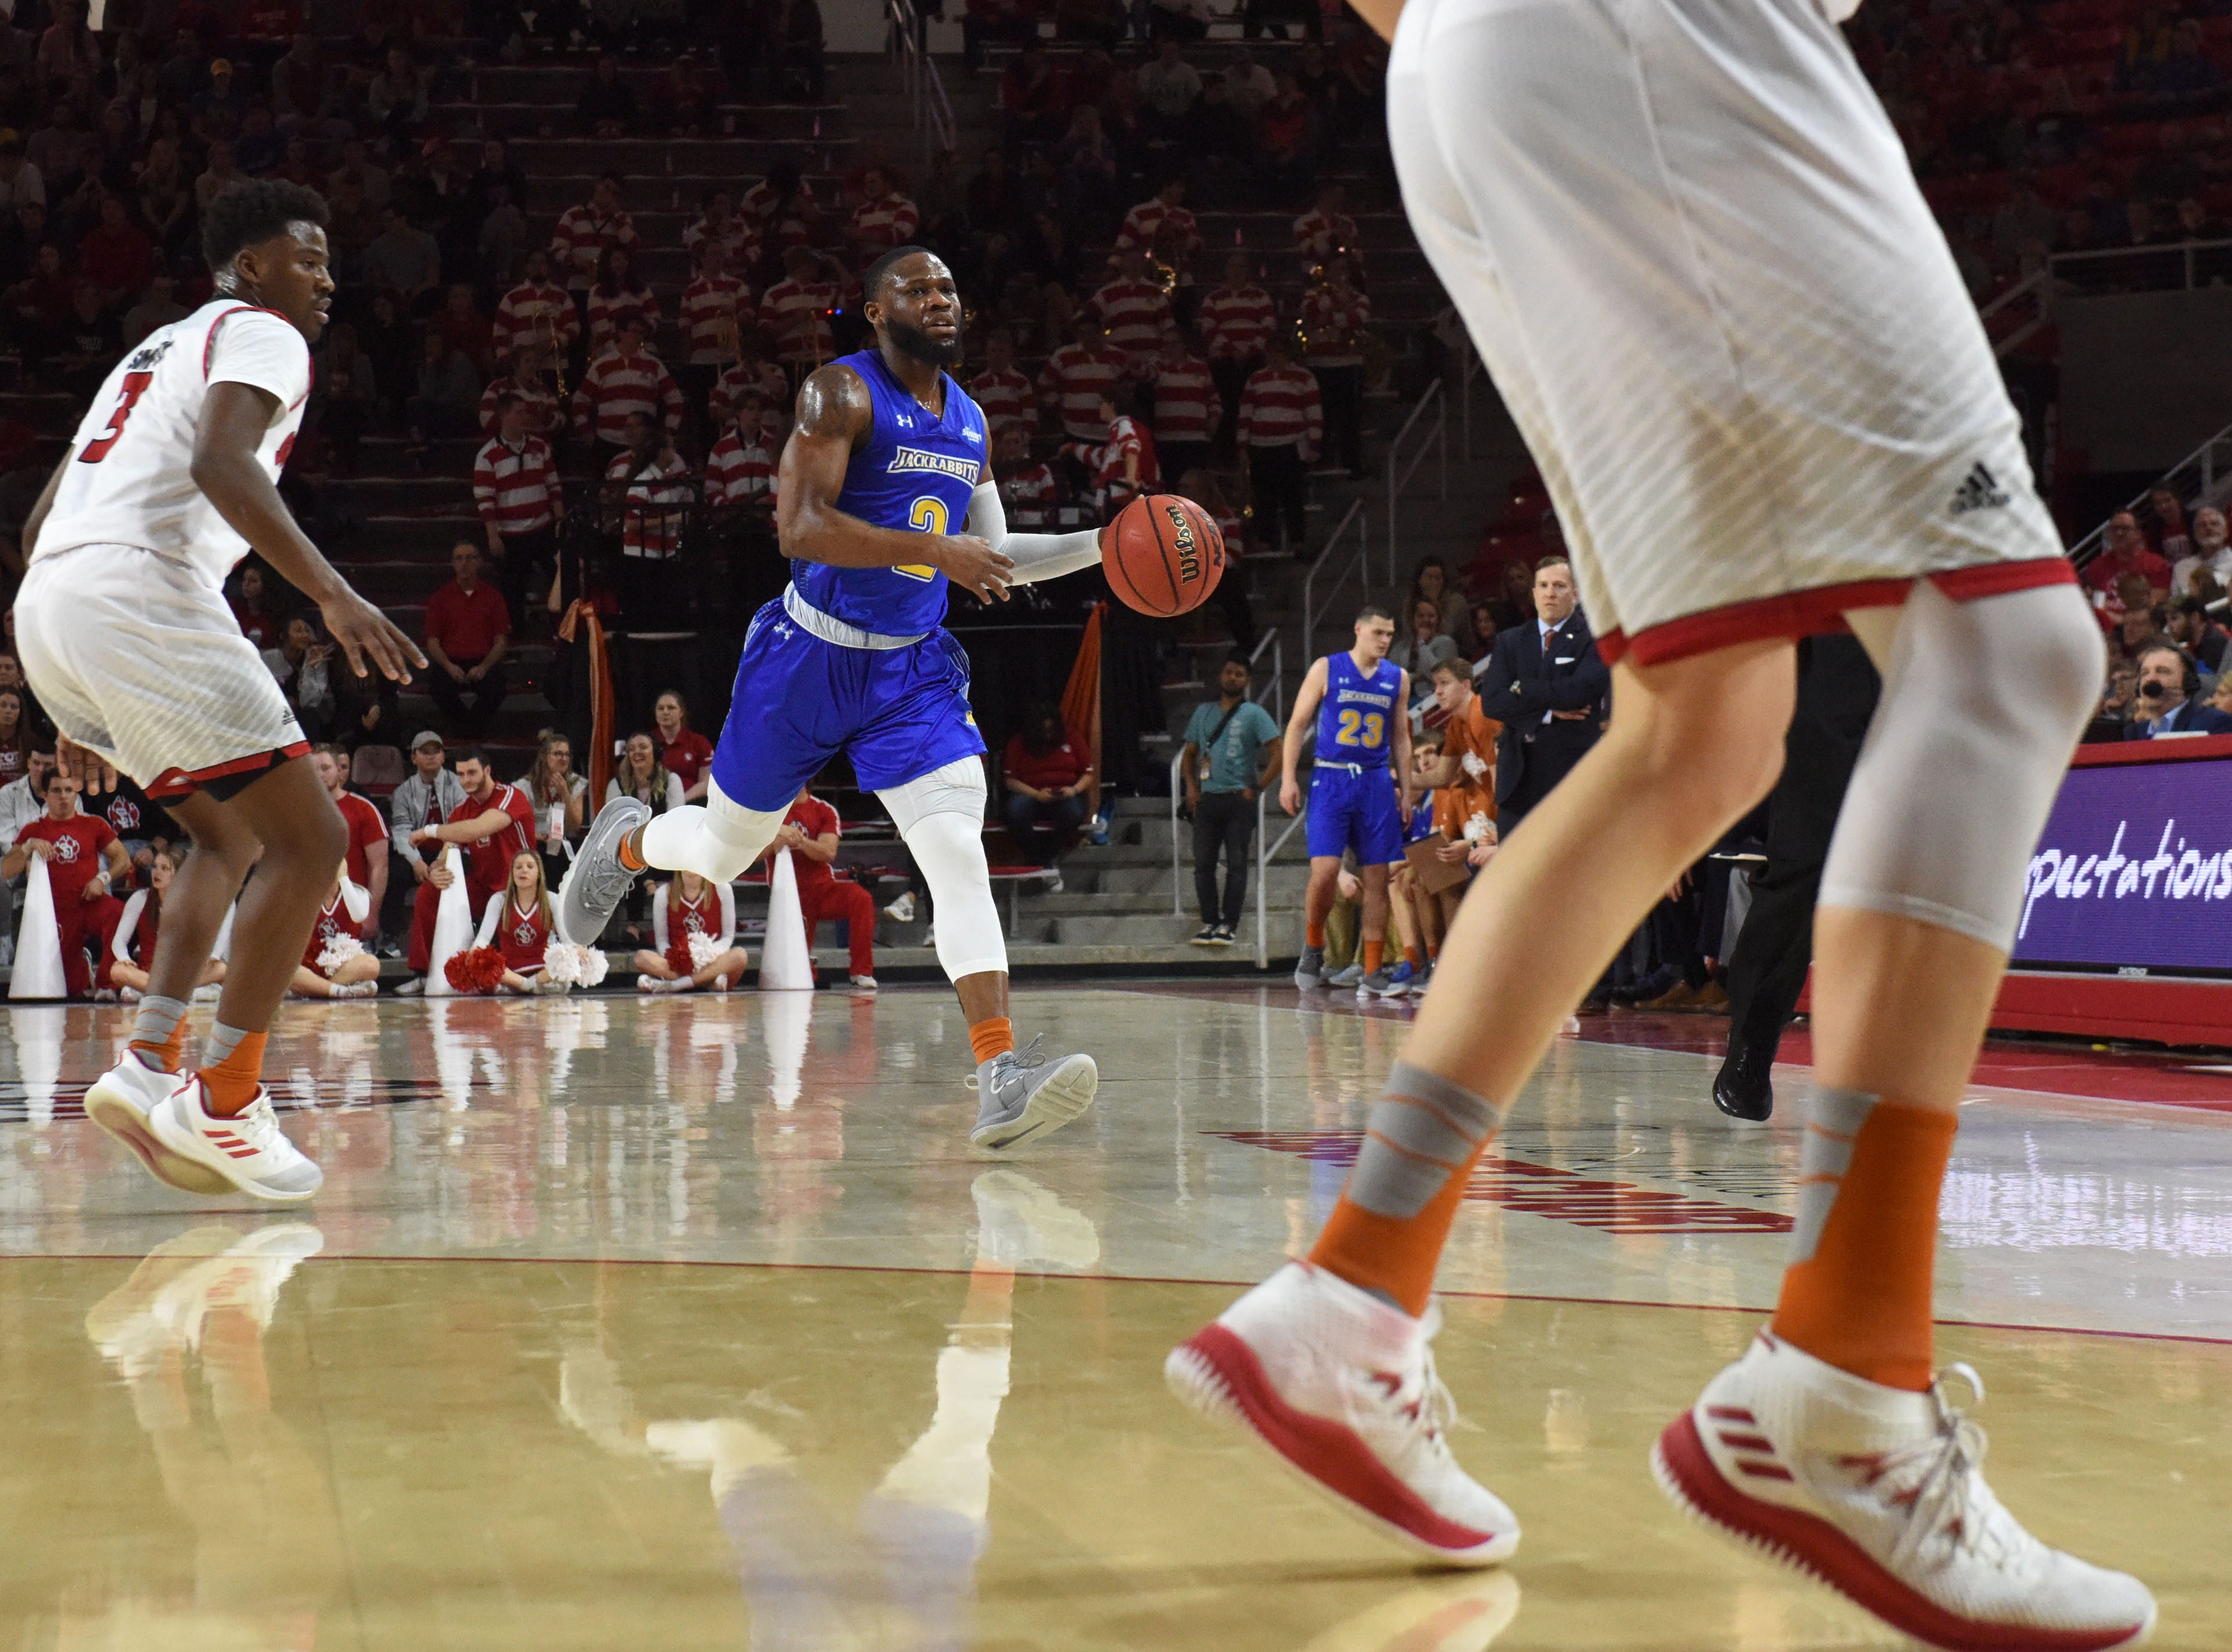 SDSU's Tevin King (2) dribbles the ball past USD players during a game, Sunday, Jan. 6, 2019 in Vermillion, S.D.